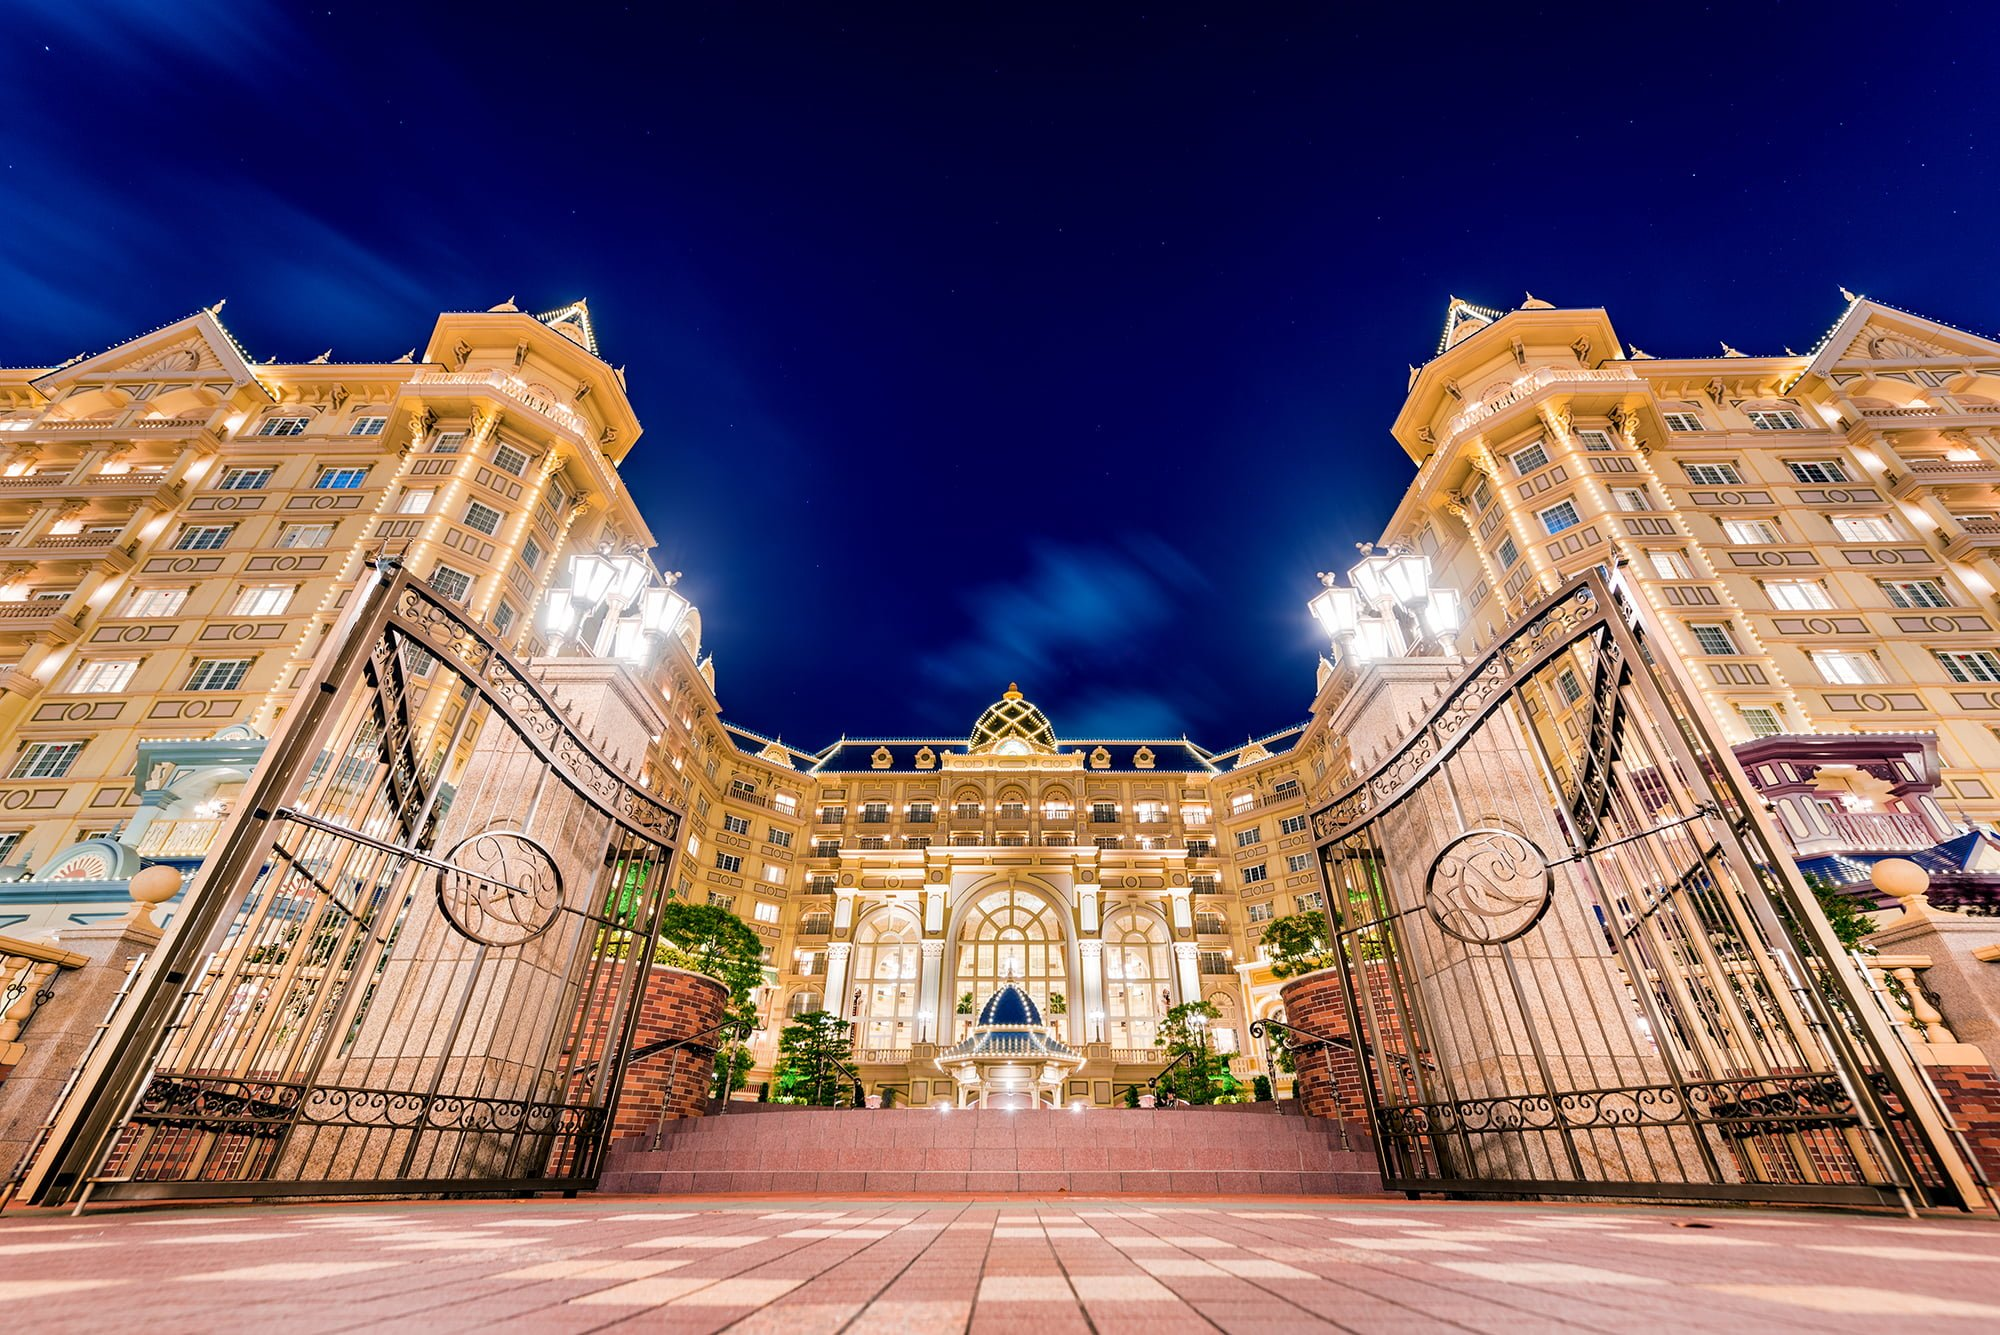 Save up to 40% off the gate price when you book our Disneyland Paris tickets! Jump the queues with Free FASTPASS & get instant e-tickets. Our cheap Disneyland Paris tickets give you admission to both of the Disney theme parks - Disneyland Park & Walt Disney Studios Park.